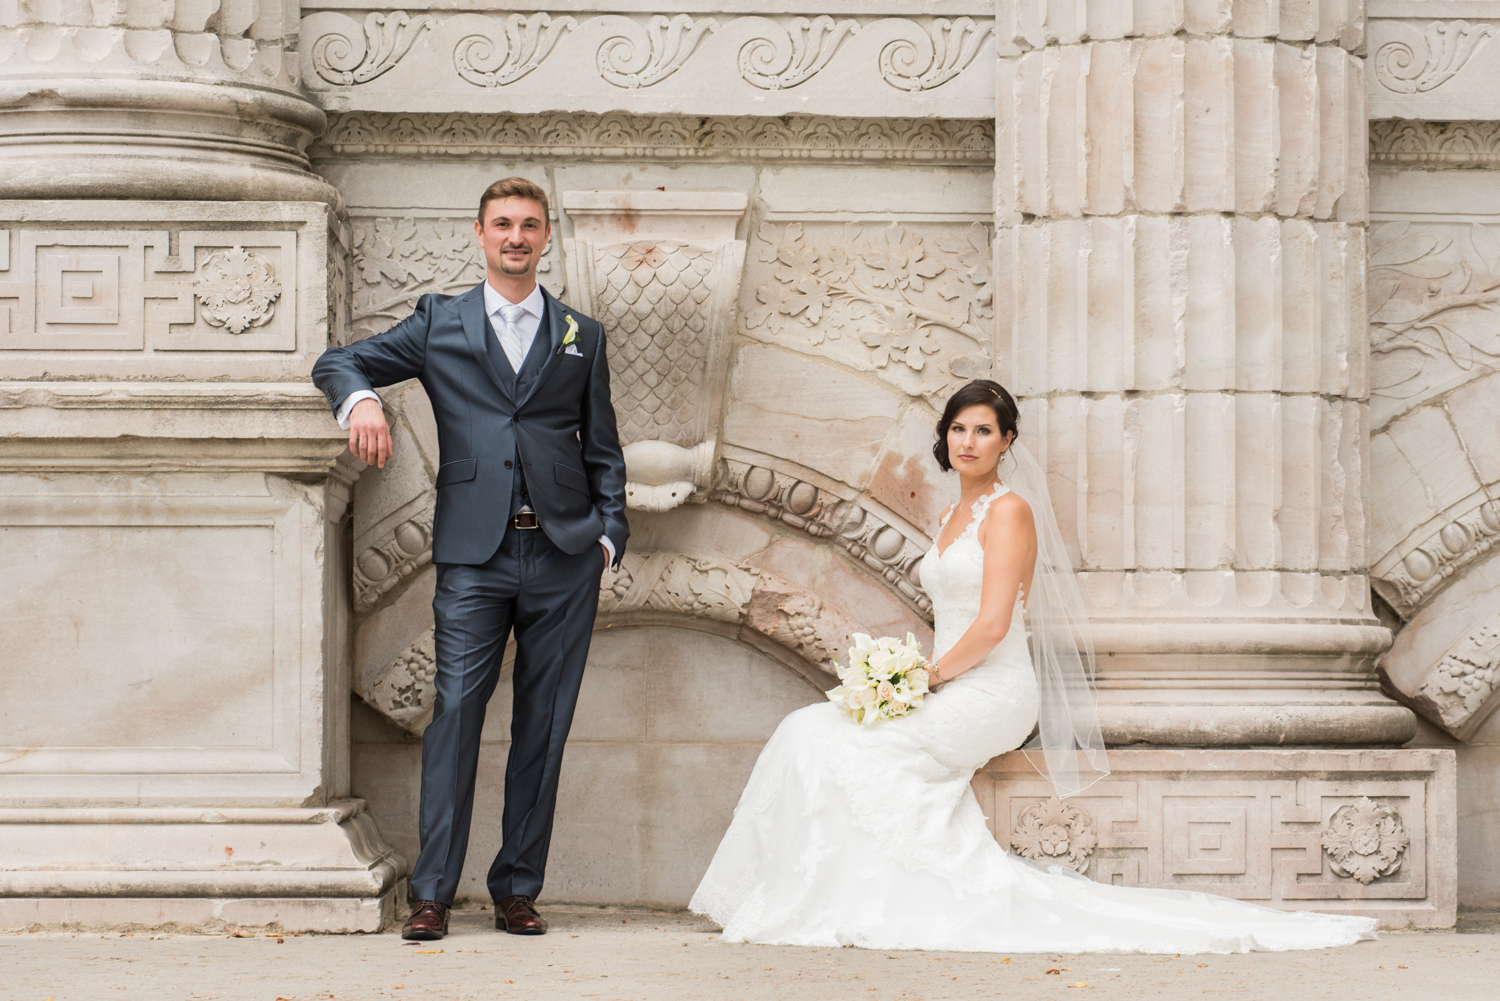 It was an amazing experience to have Ricardo photograph our wedding. His personality and professionalism makes everything very easy. We are so lucky that we will forever look back on our wedding day through his photographs.  - Mary and Michael